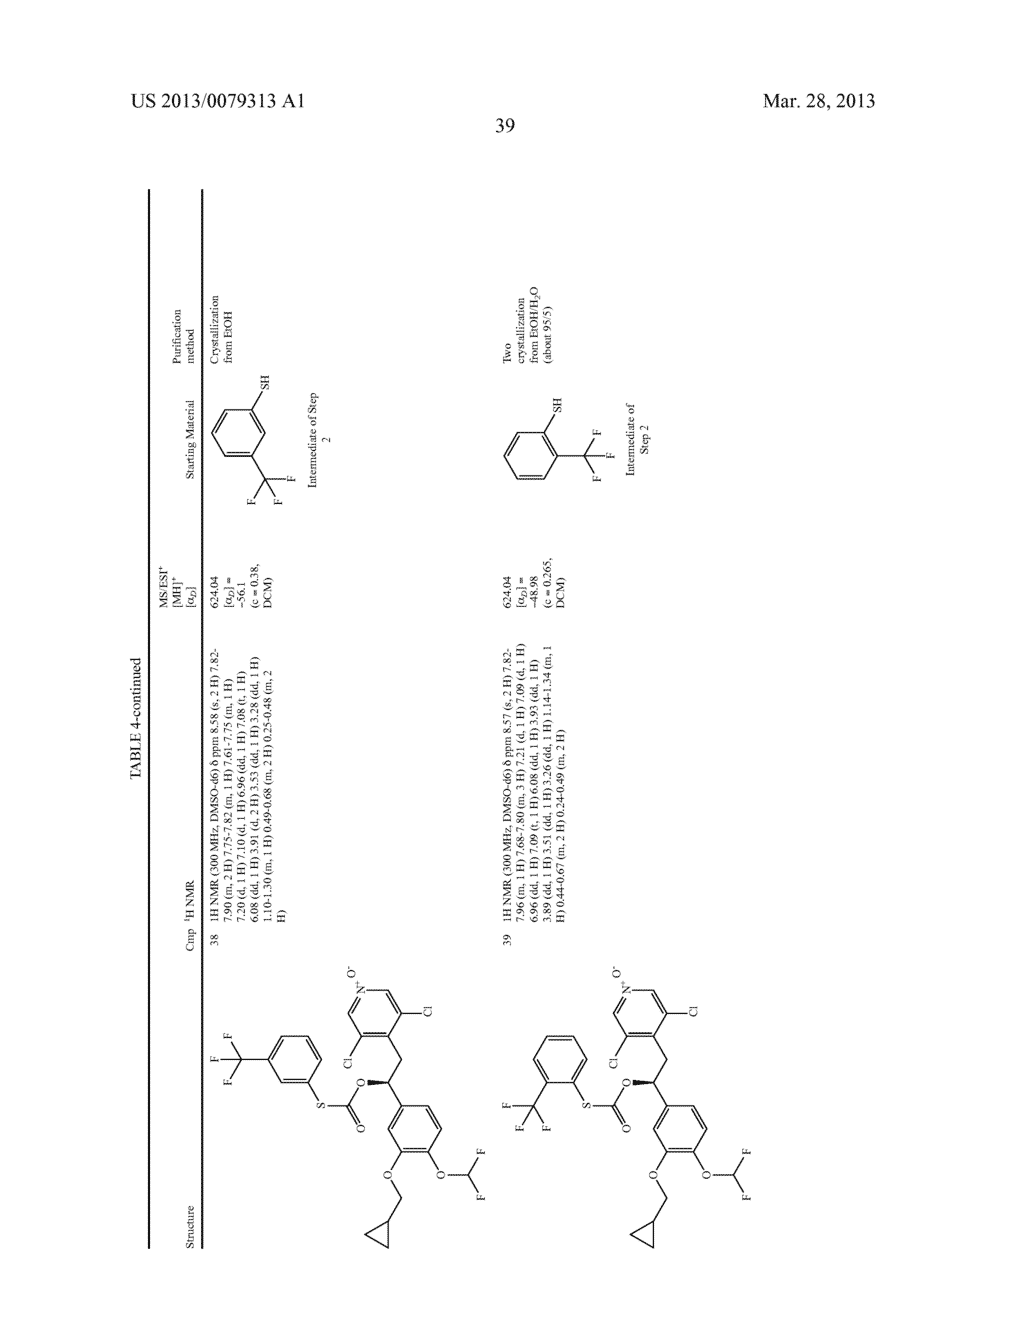 DERIVATIVES OF 1-PHENYL-2-PYRIDINYL ALKYL ALCOHOLS AS PHOSPHODIESTERASE     INHIBITORS - diagram, schematic, and image 40